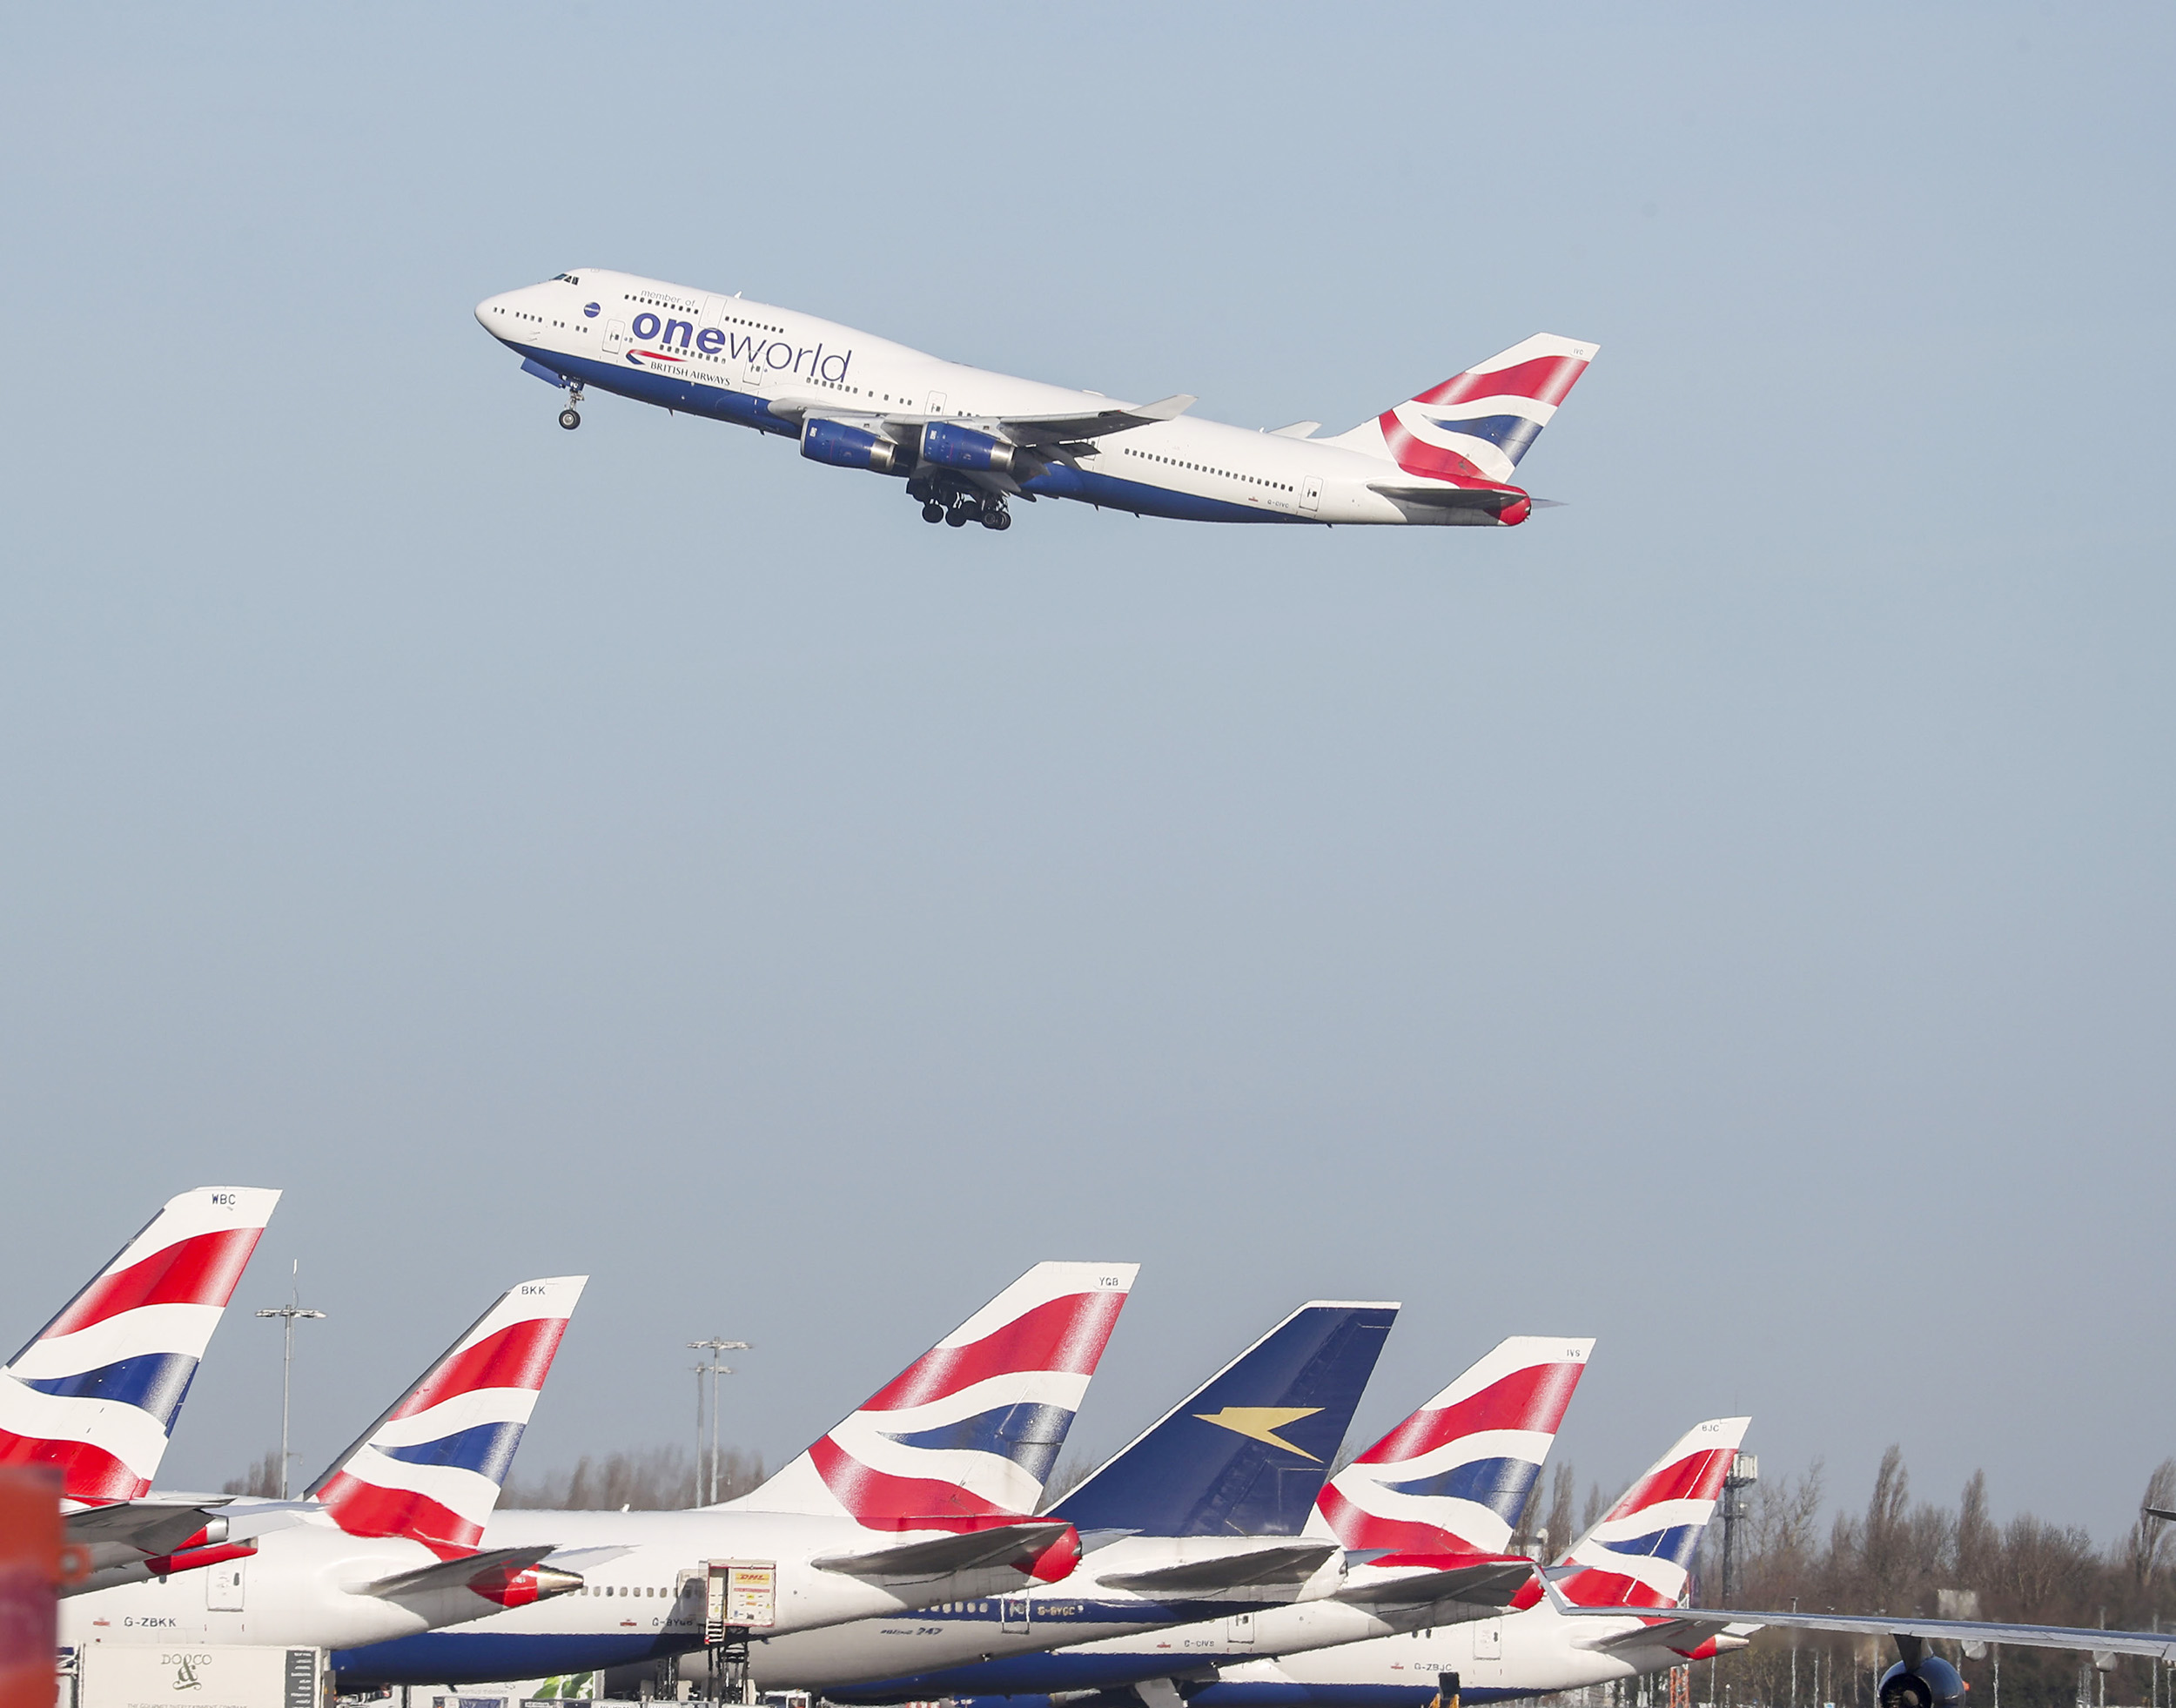 A British Airways plane takes off at Heathrow Airport on January 29, in London, England.